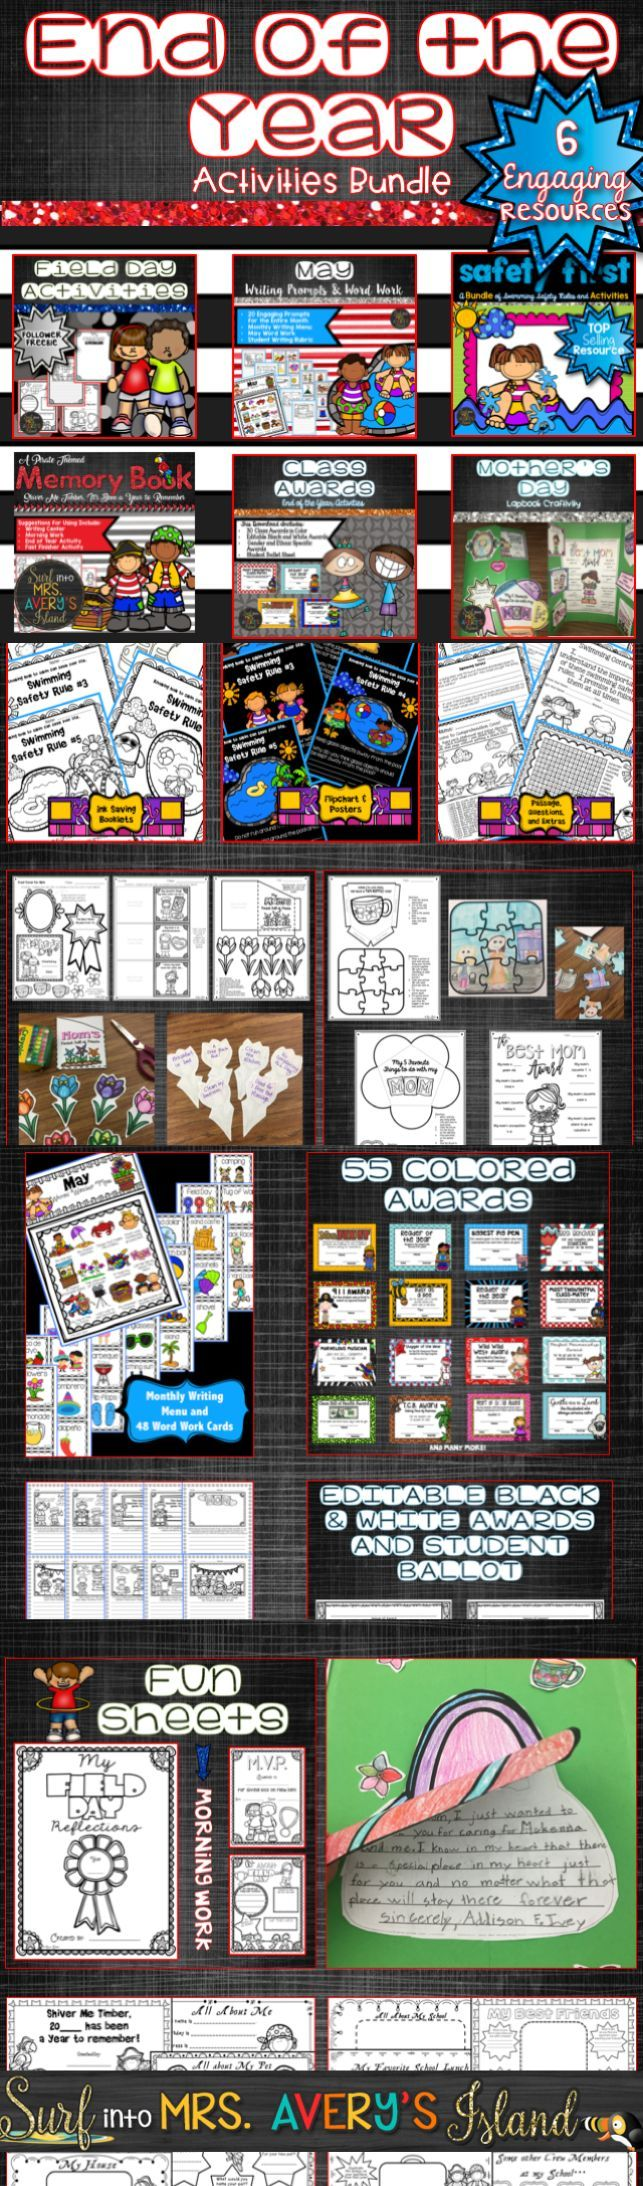 These end of the year activities for kids will keep your elementary students engaged as they complete a variety of fun activities and projects!  6 products are included in this bundle to ensure teachers have everything they need to end the school year!  Click here to discover an end of the year memory book, Mother's Day craft, May writing prompts, Field Day booklet, Class Awards, and a Swim Safety packet to keep your students safe during the summer!